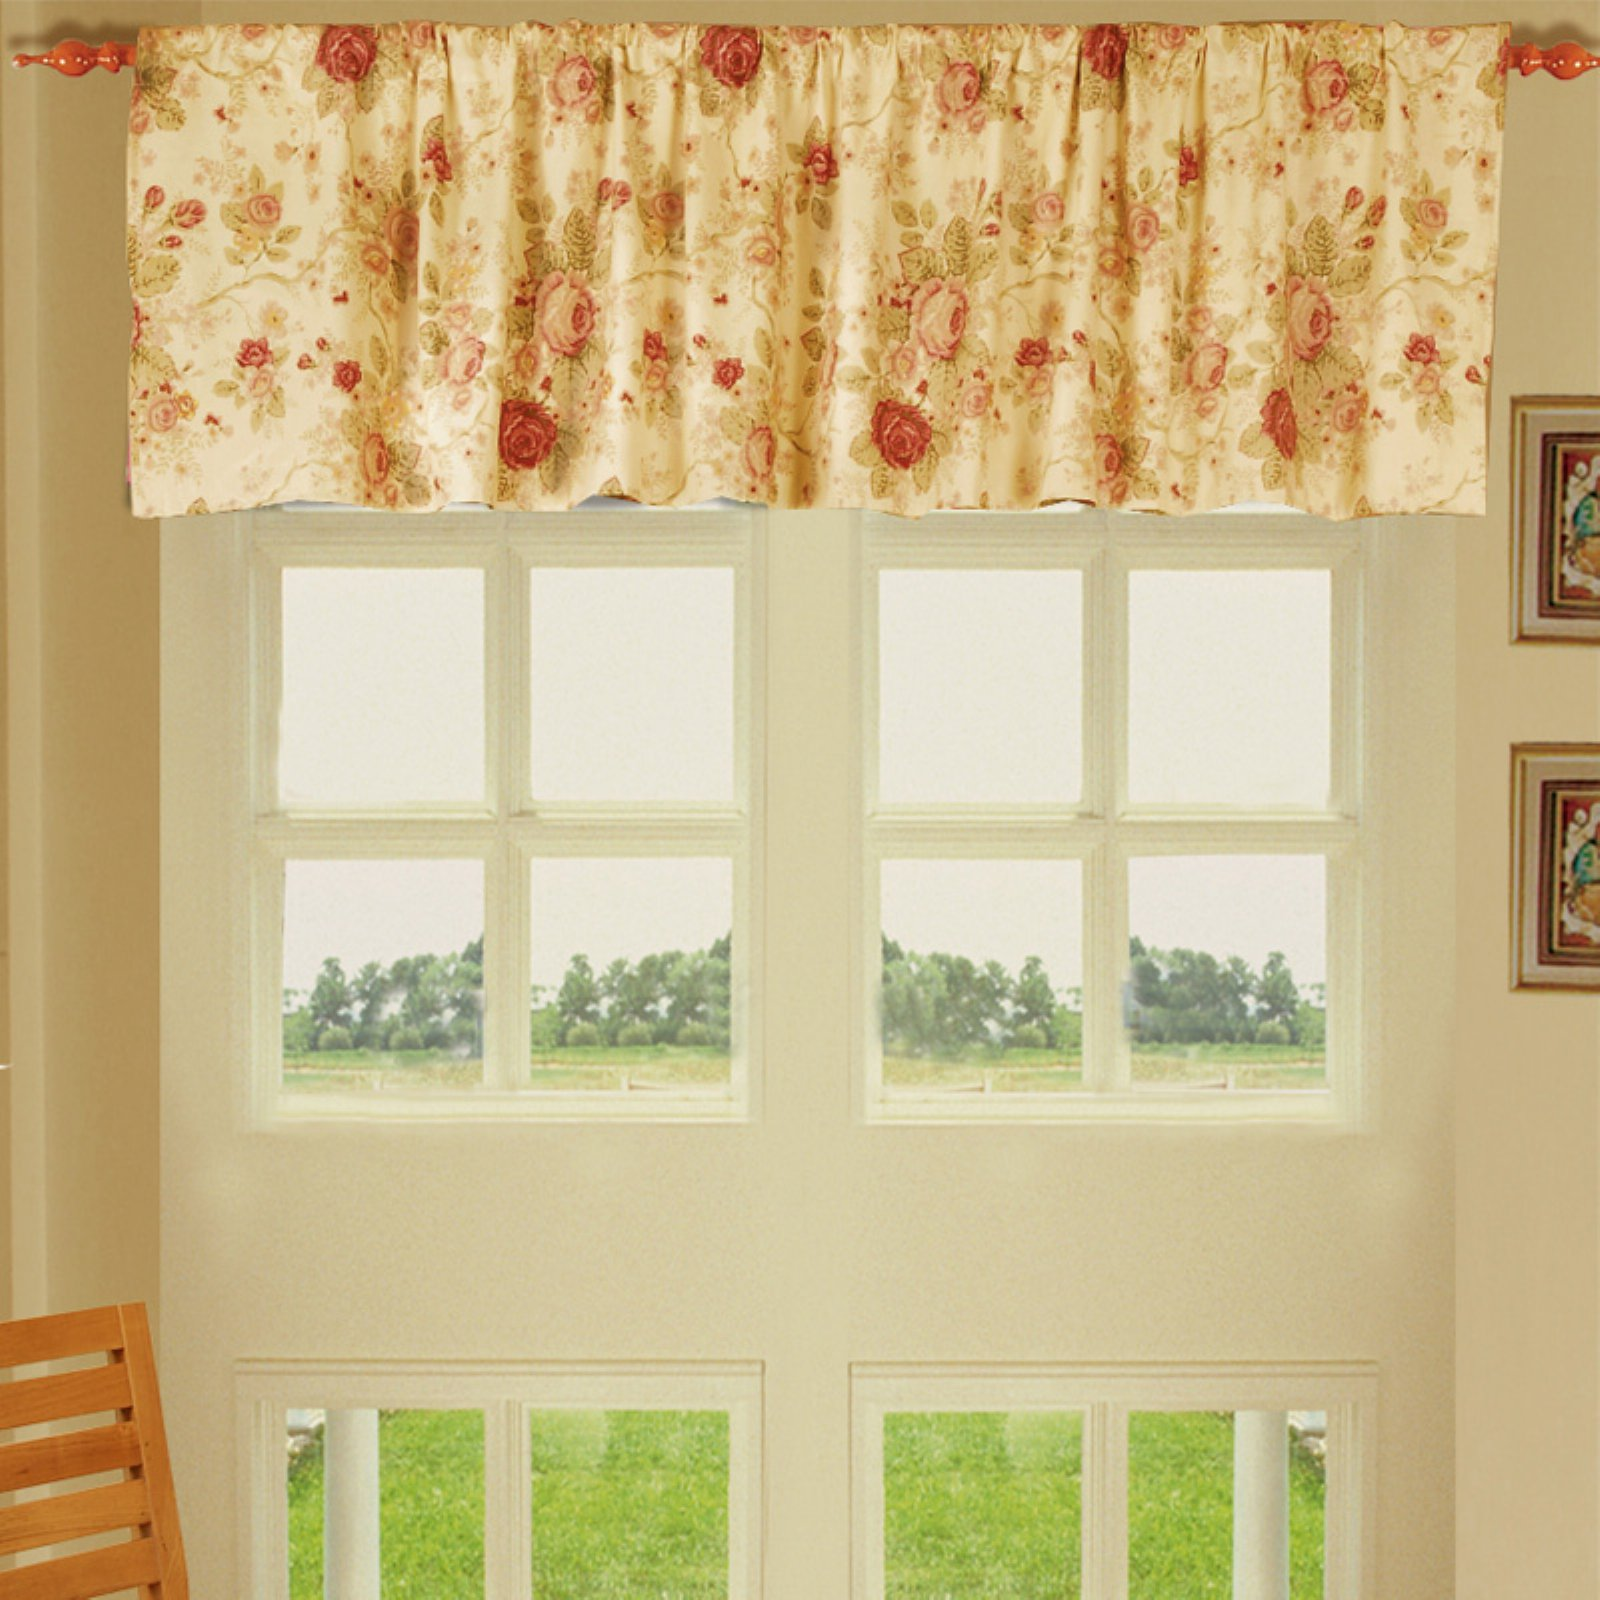 Greenland Home Fashions Antique Rose - Valance - 21L x 84W in.